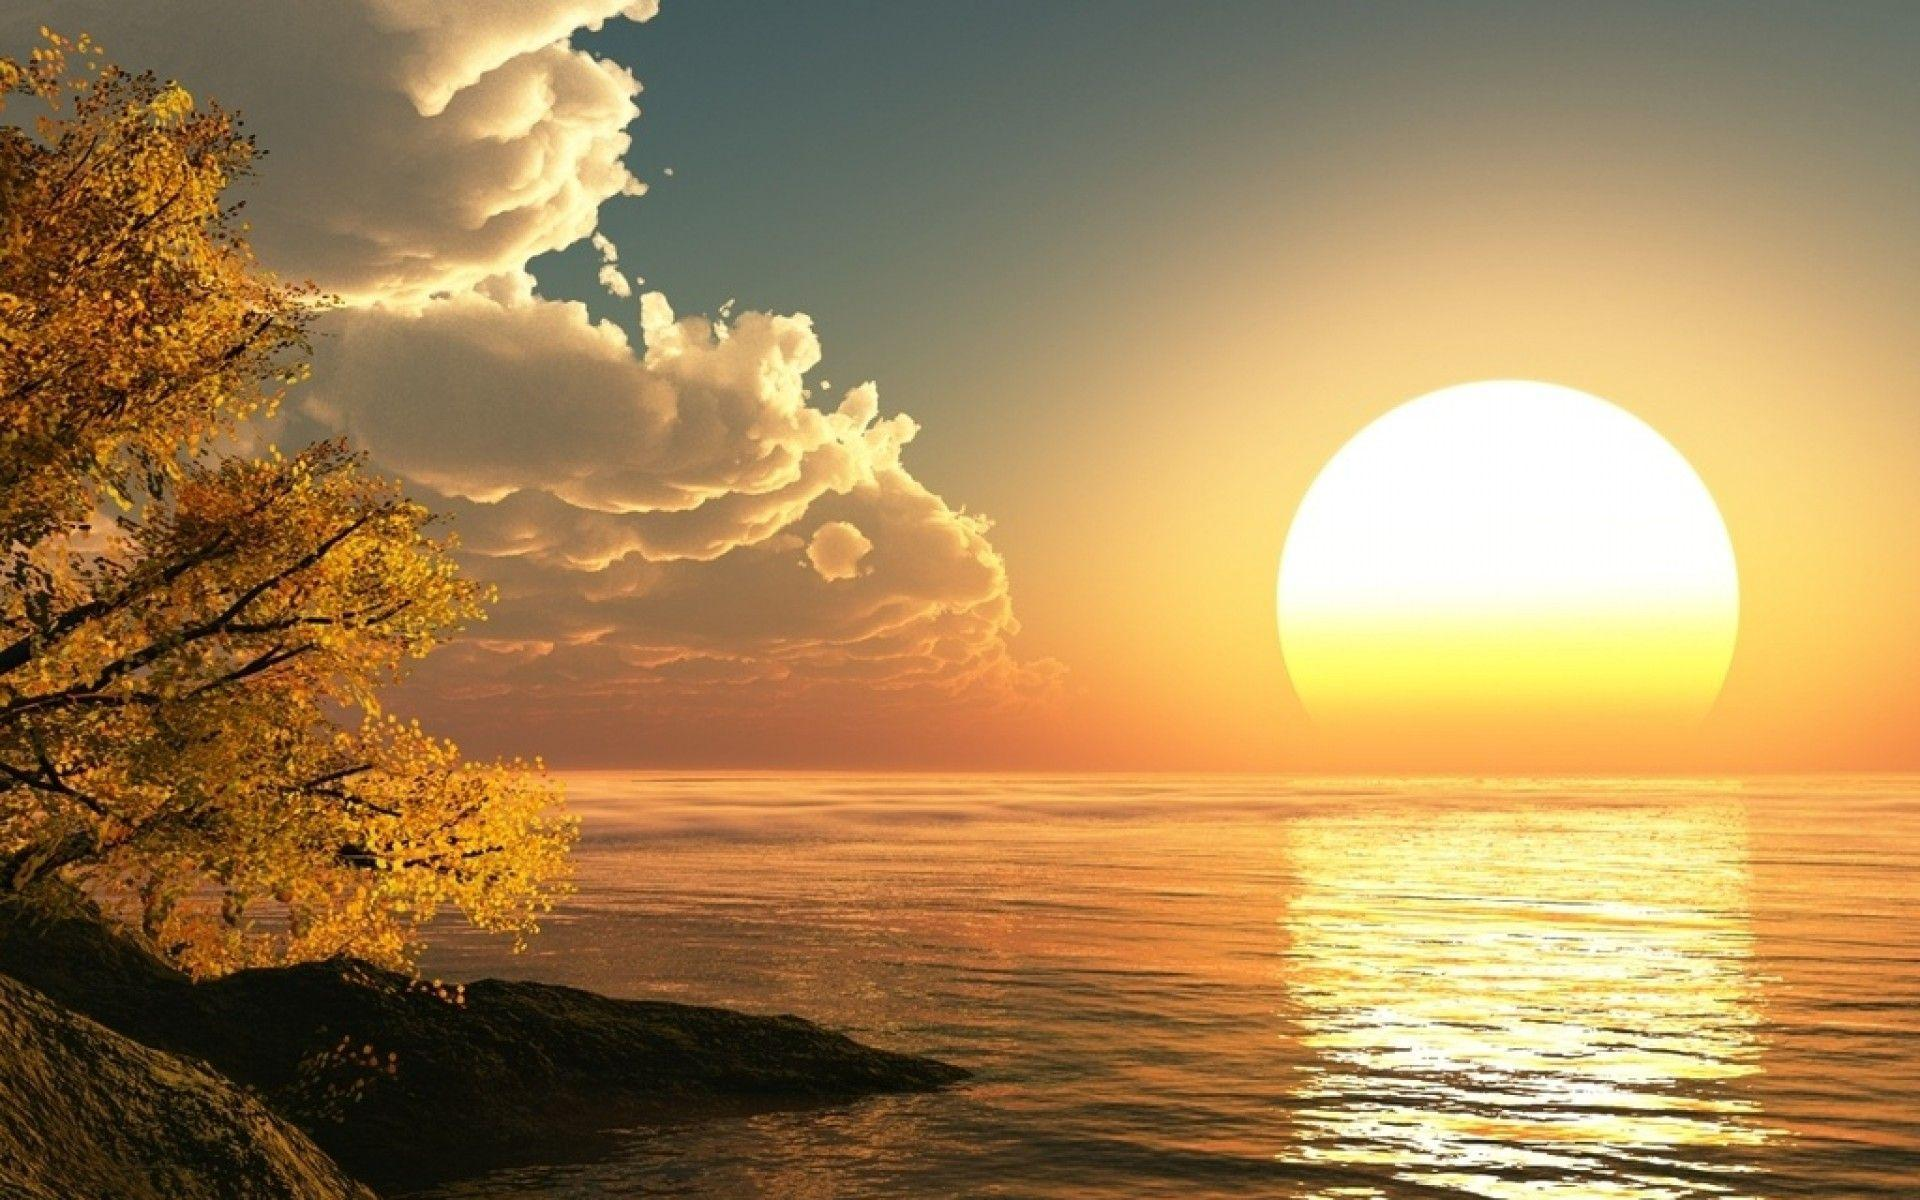 Rising Sun Wallpapers - Full HD wallpaper search